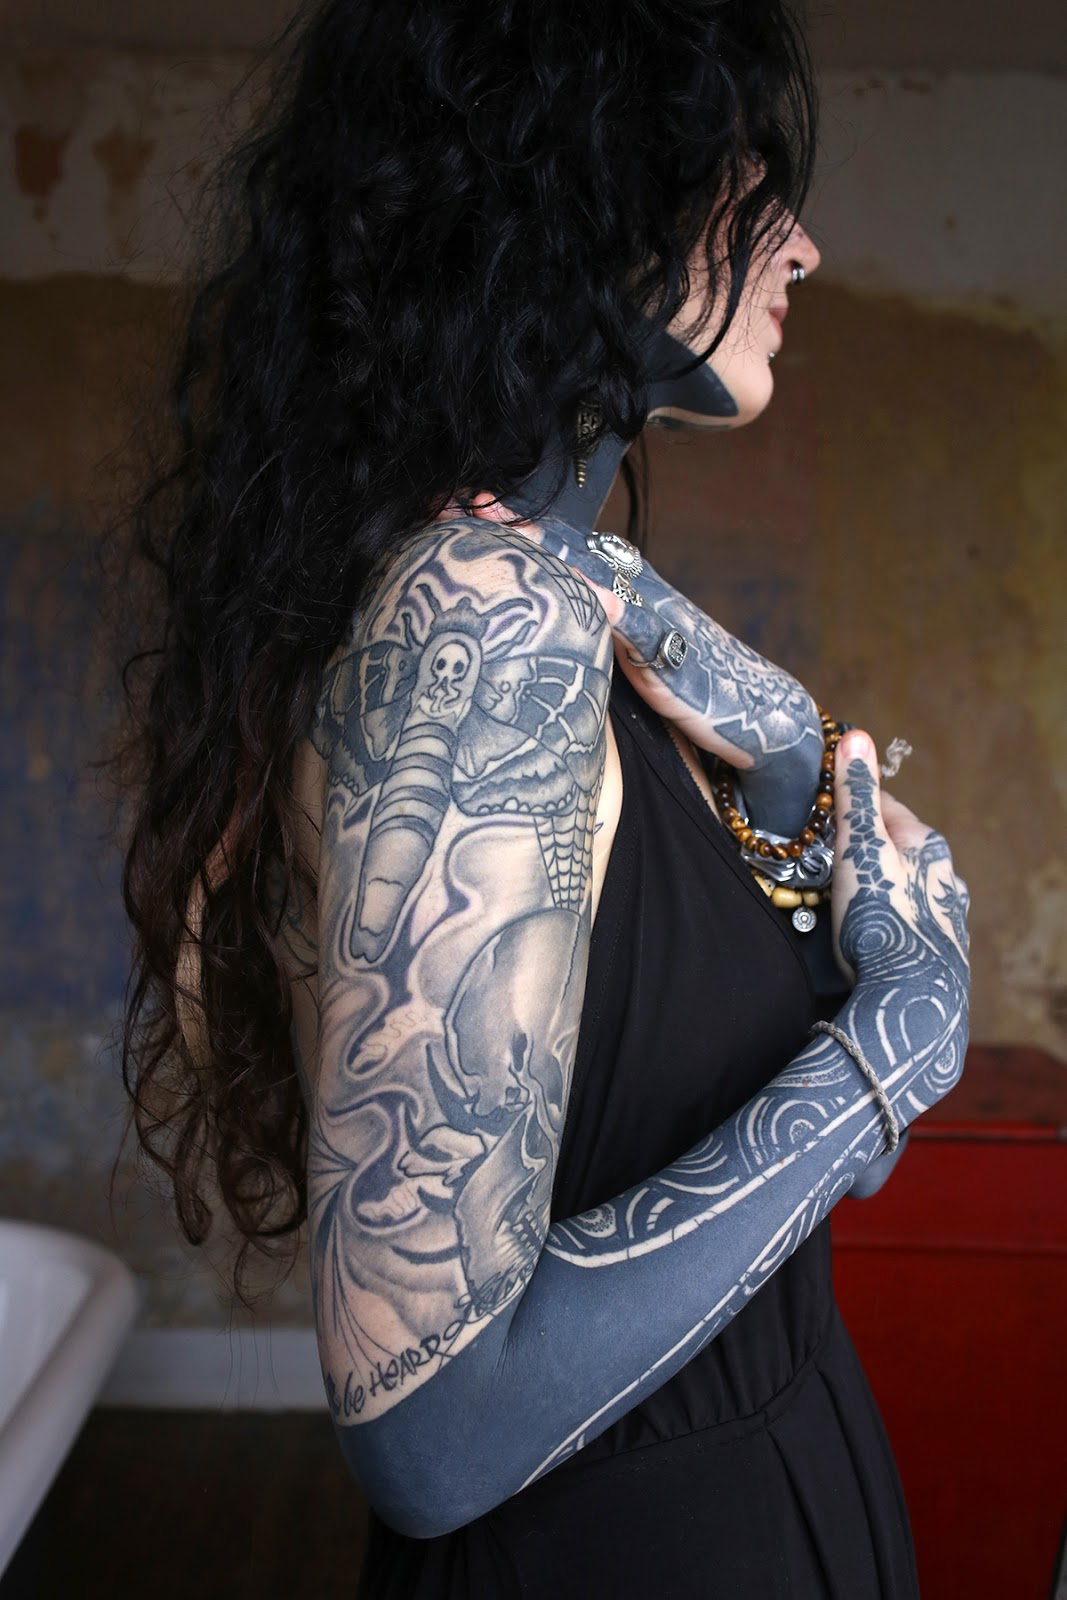 ee6802120 Sophie | Women with Tattoos